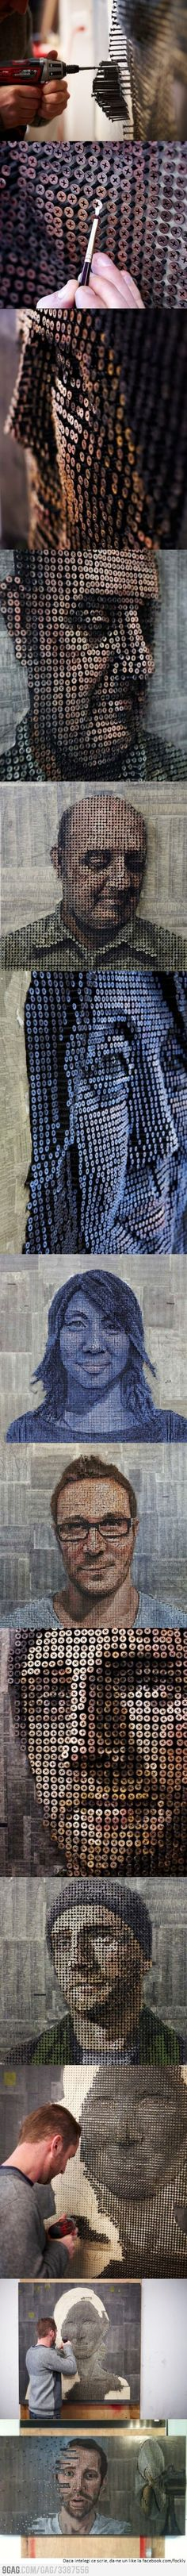 Amazing 3D portraits made out of screws by Andrew Myers. Determined to try this, on a smaller scale of course (: